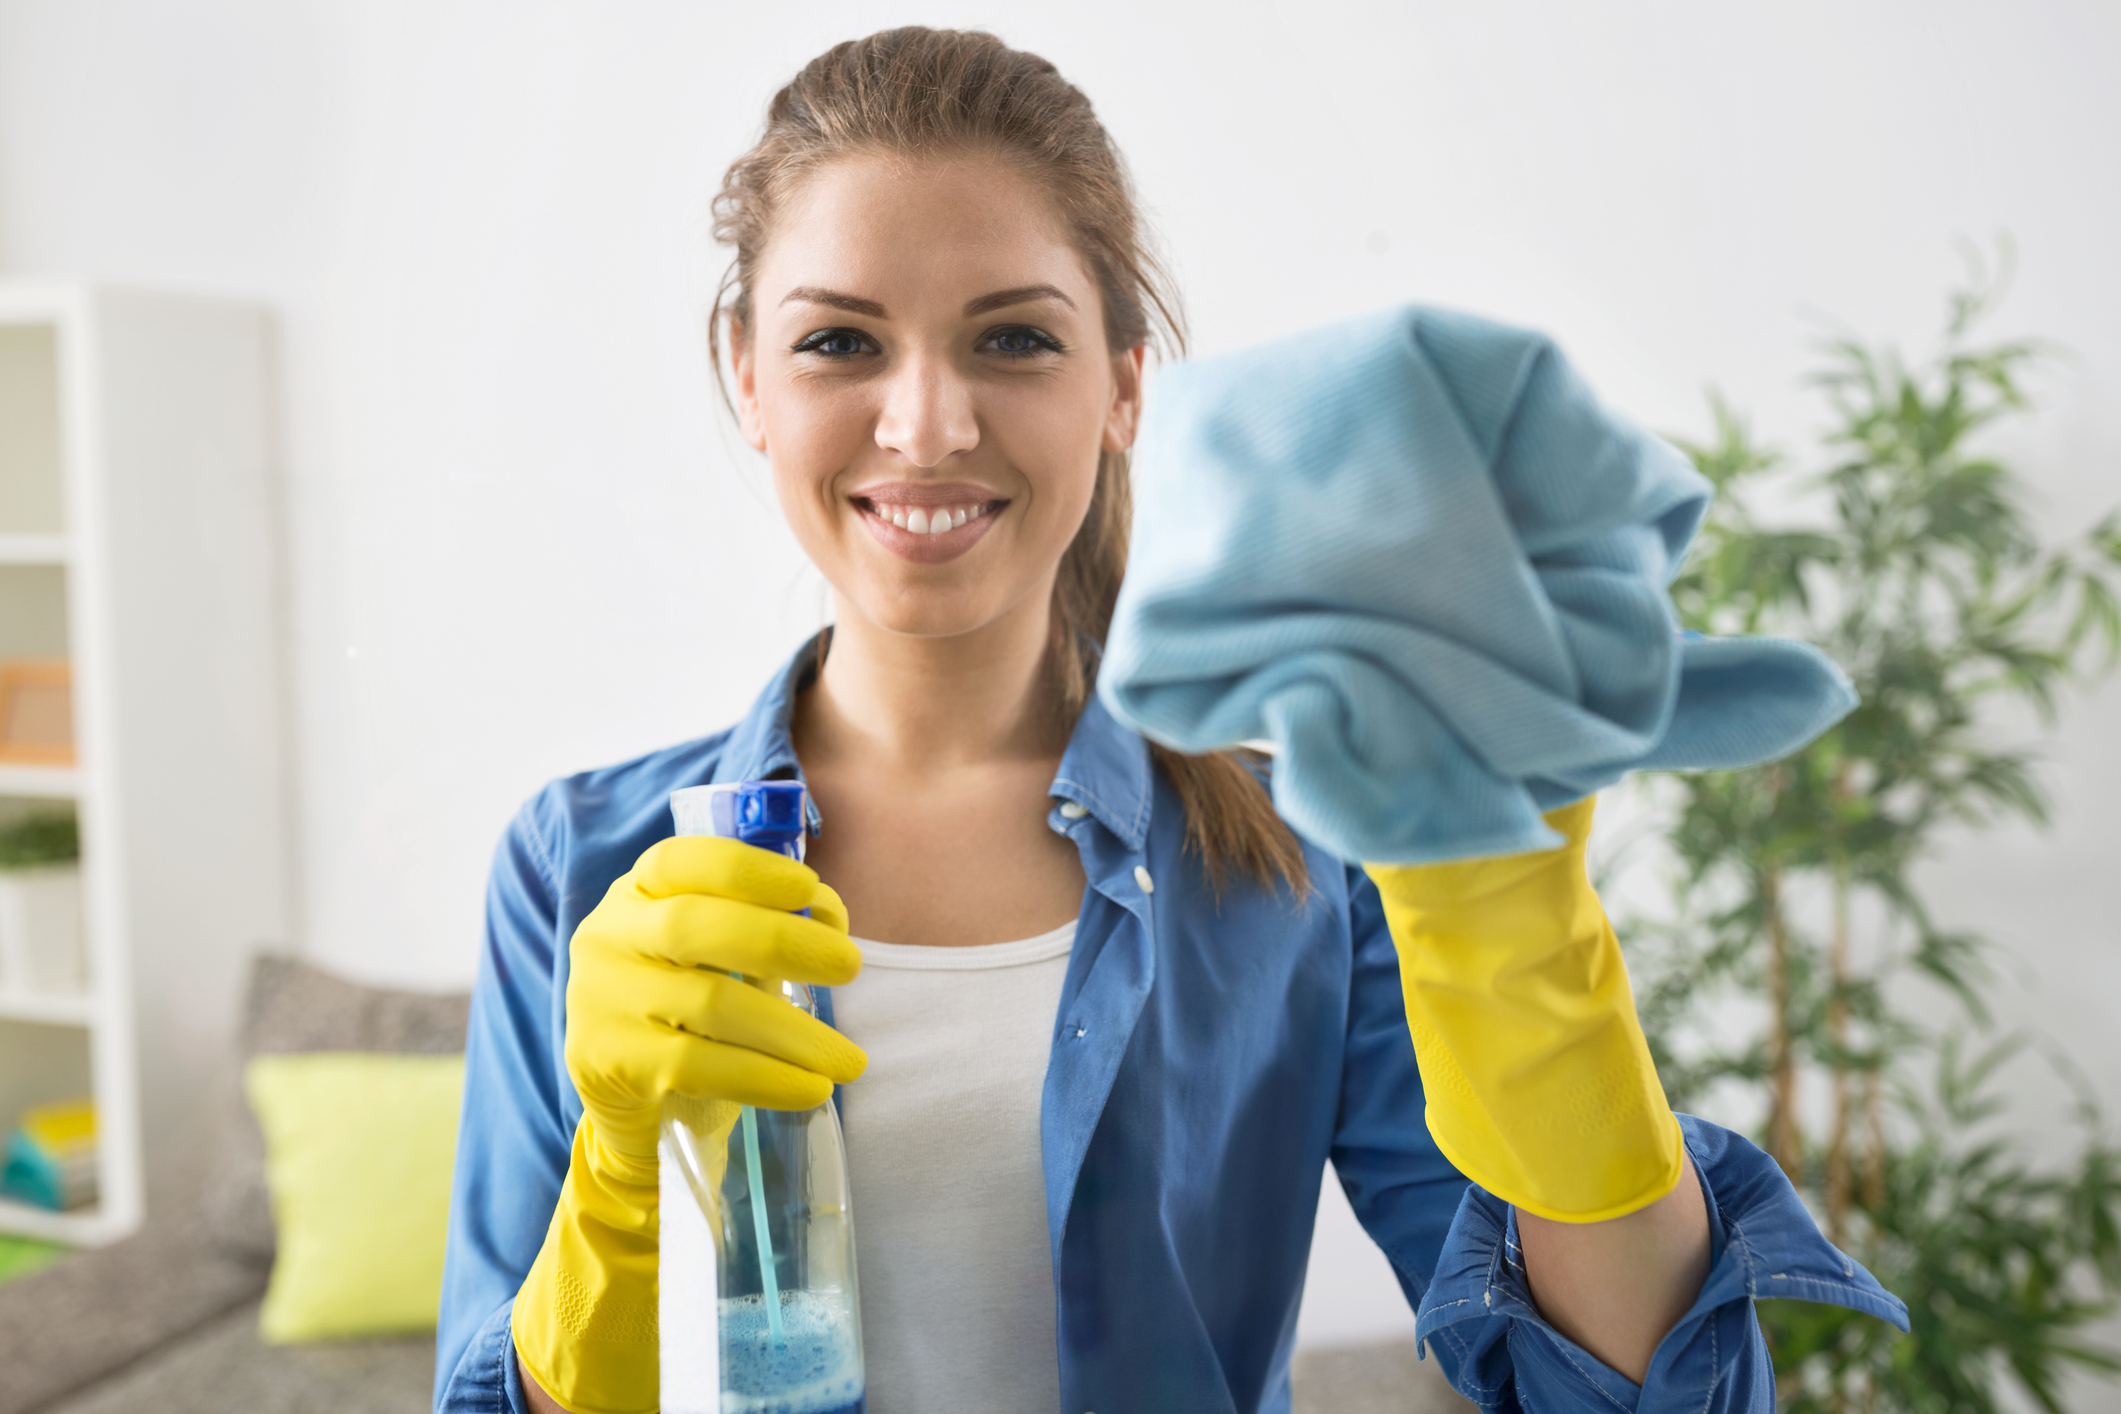 Attractive Woman Washing the Window